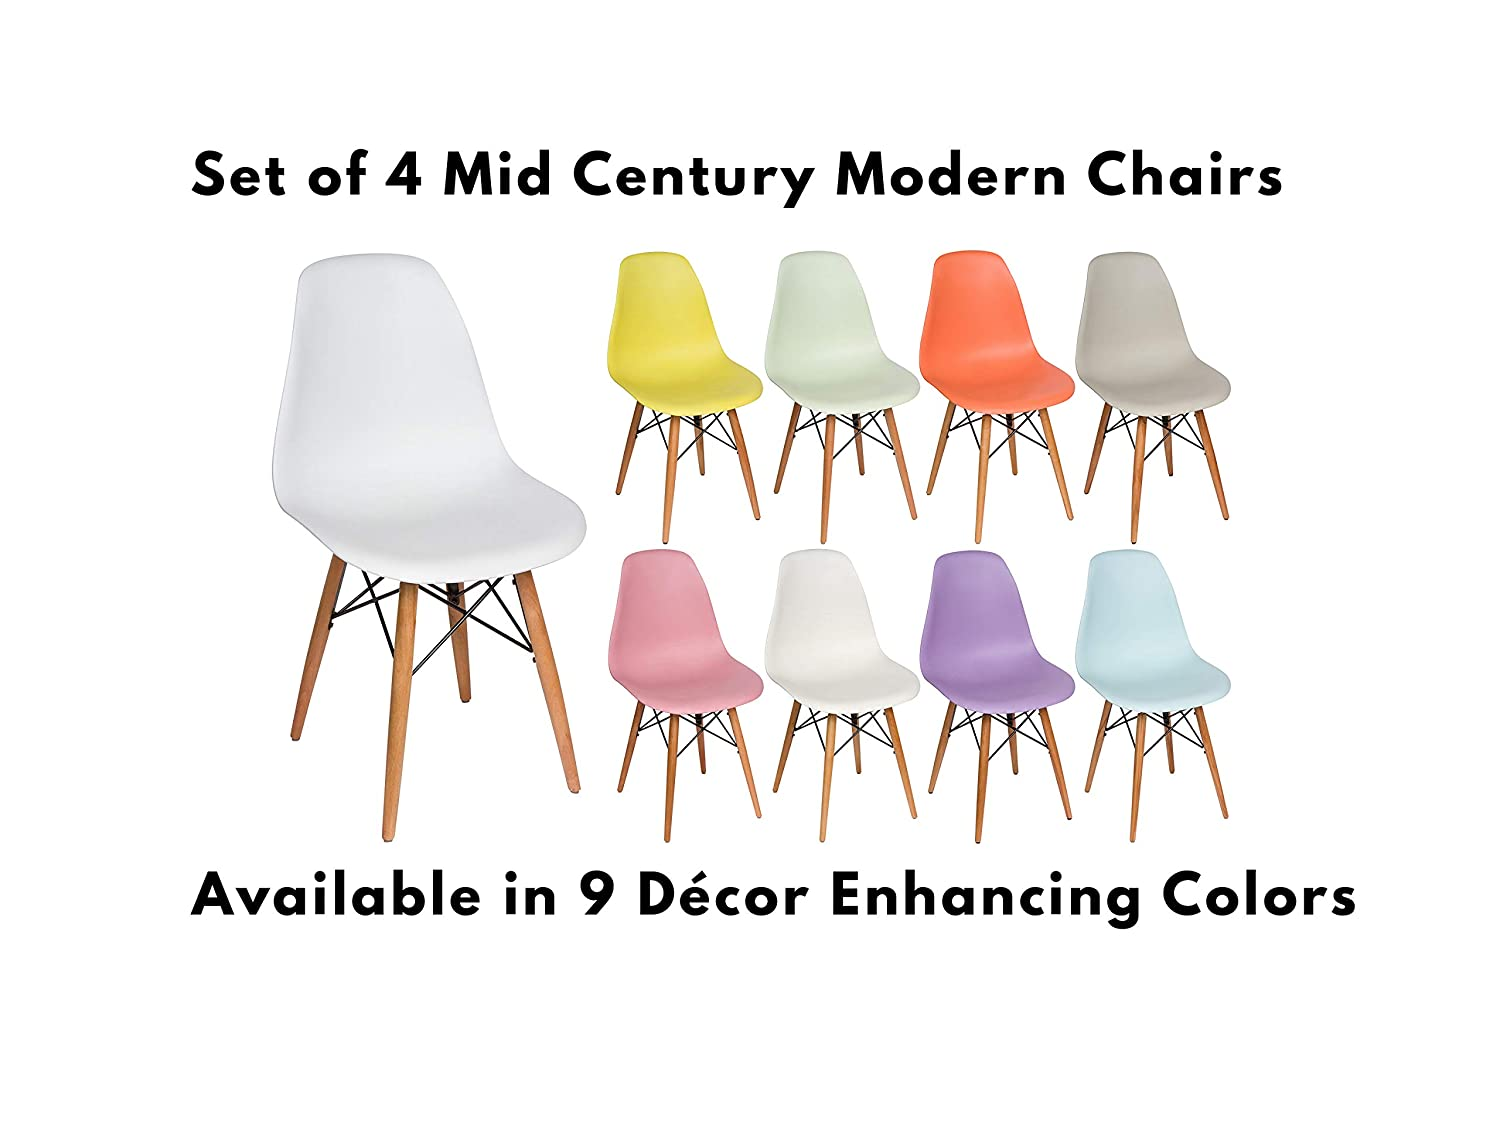 Midcentury Modern Furniture Side Chair White Liani - Designer MONOFRAME Modern Dining Chairs Set of 4 for Living Room Accent Chair Dining Table and Kitchen Chairs Mid Century Modern Chair